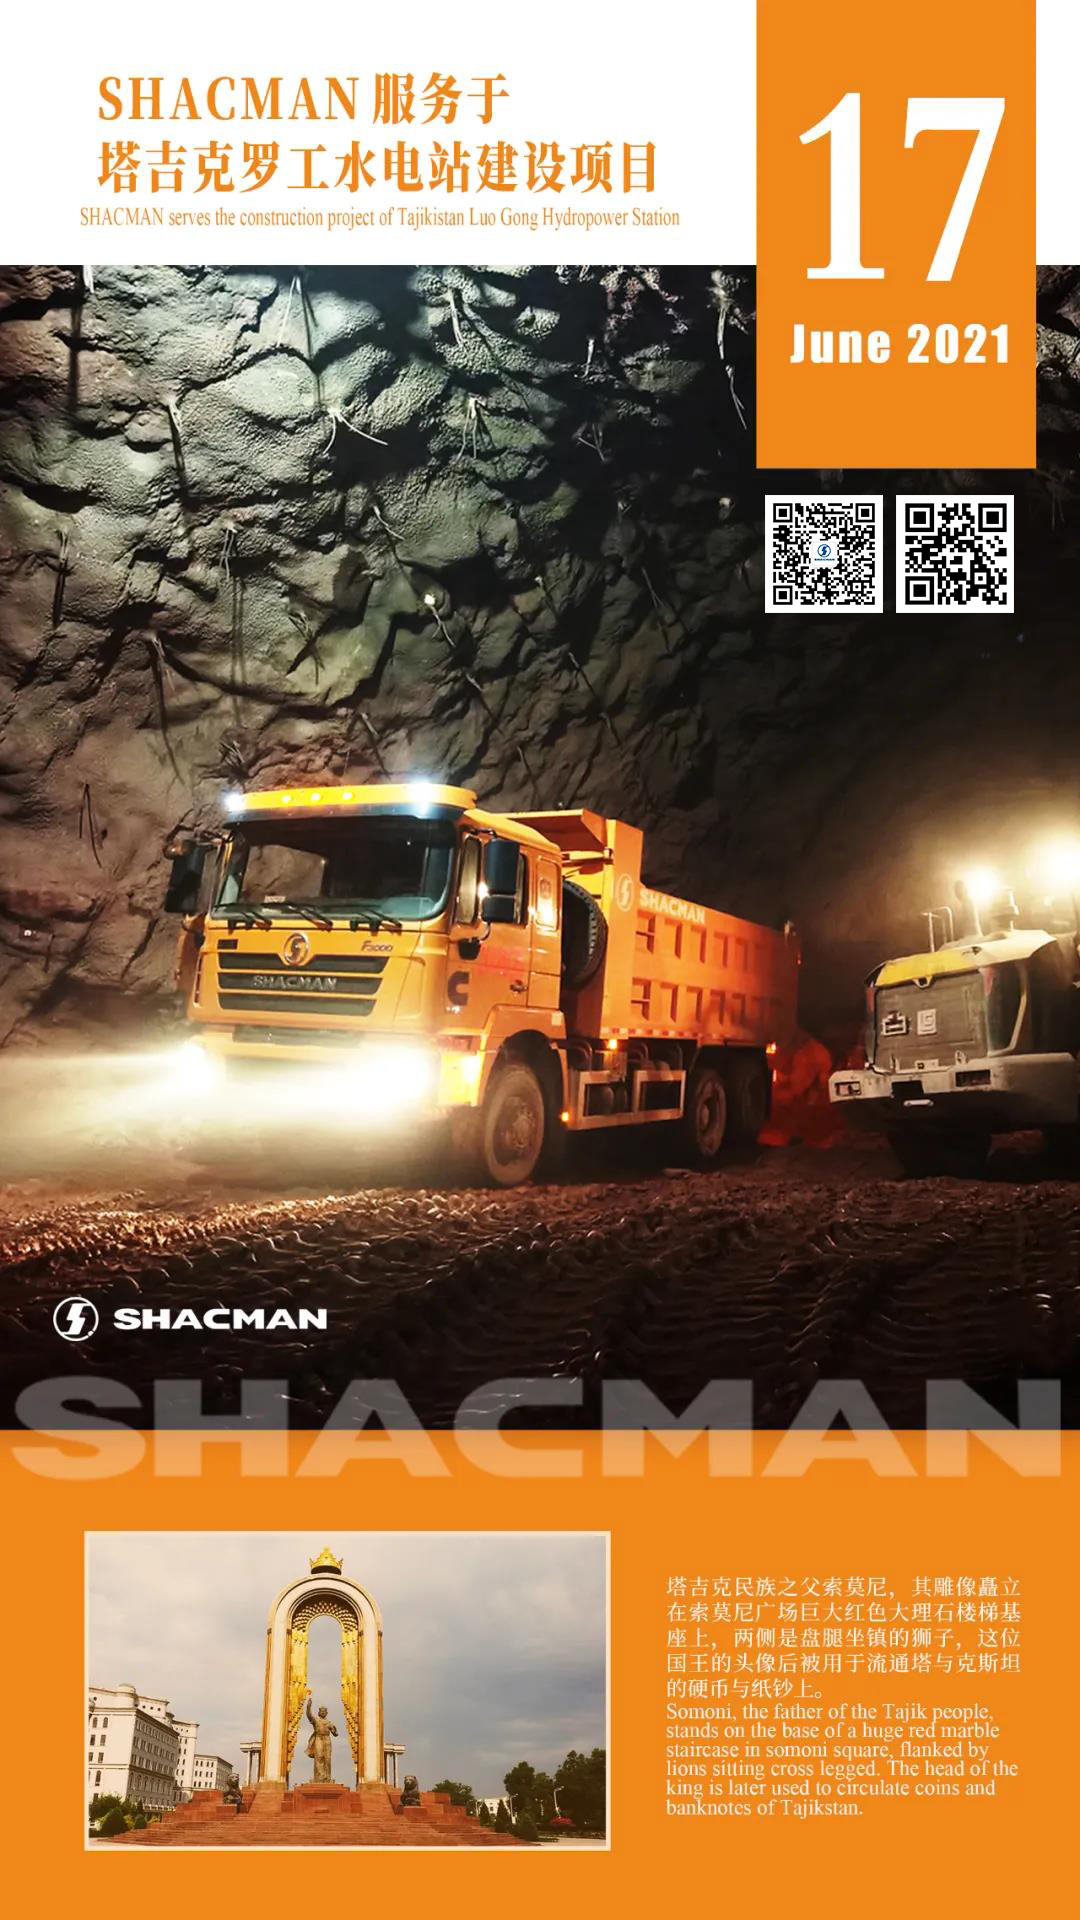 SHACMAN Serves The Construction Project of Tajikistan Luo Gong Hydropower Station!